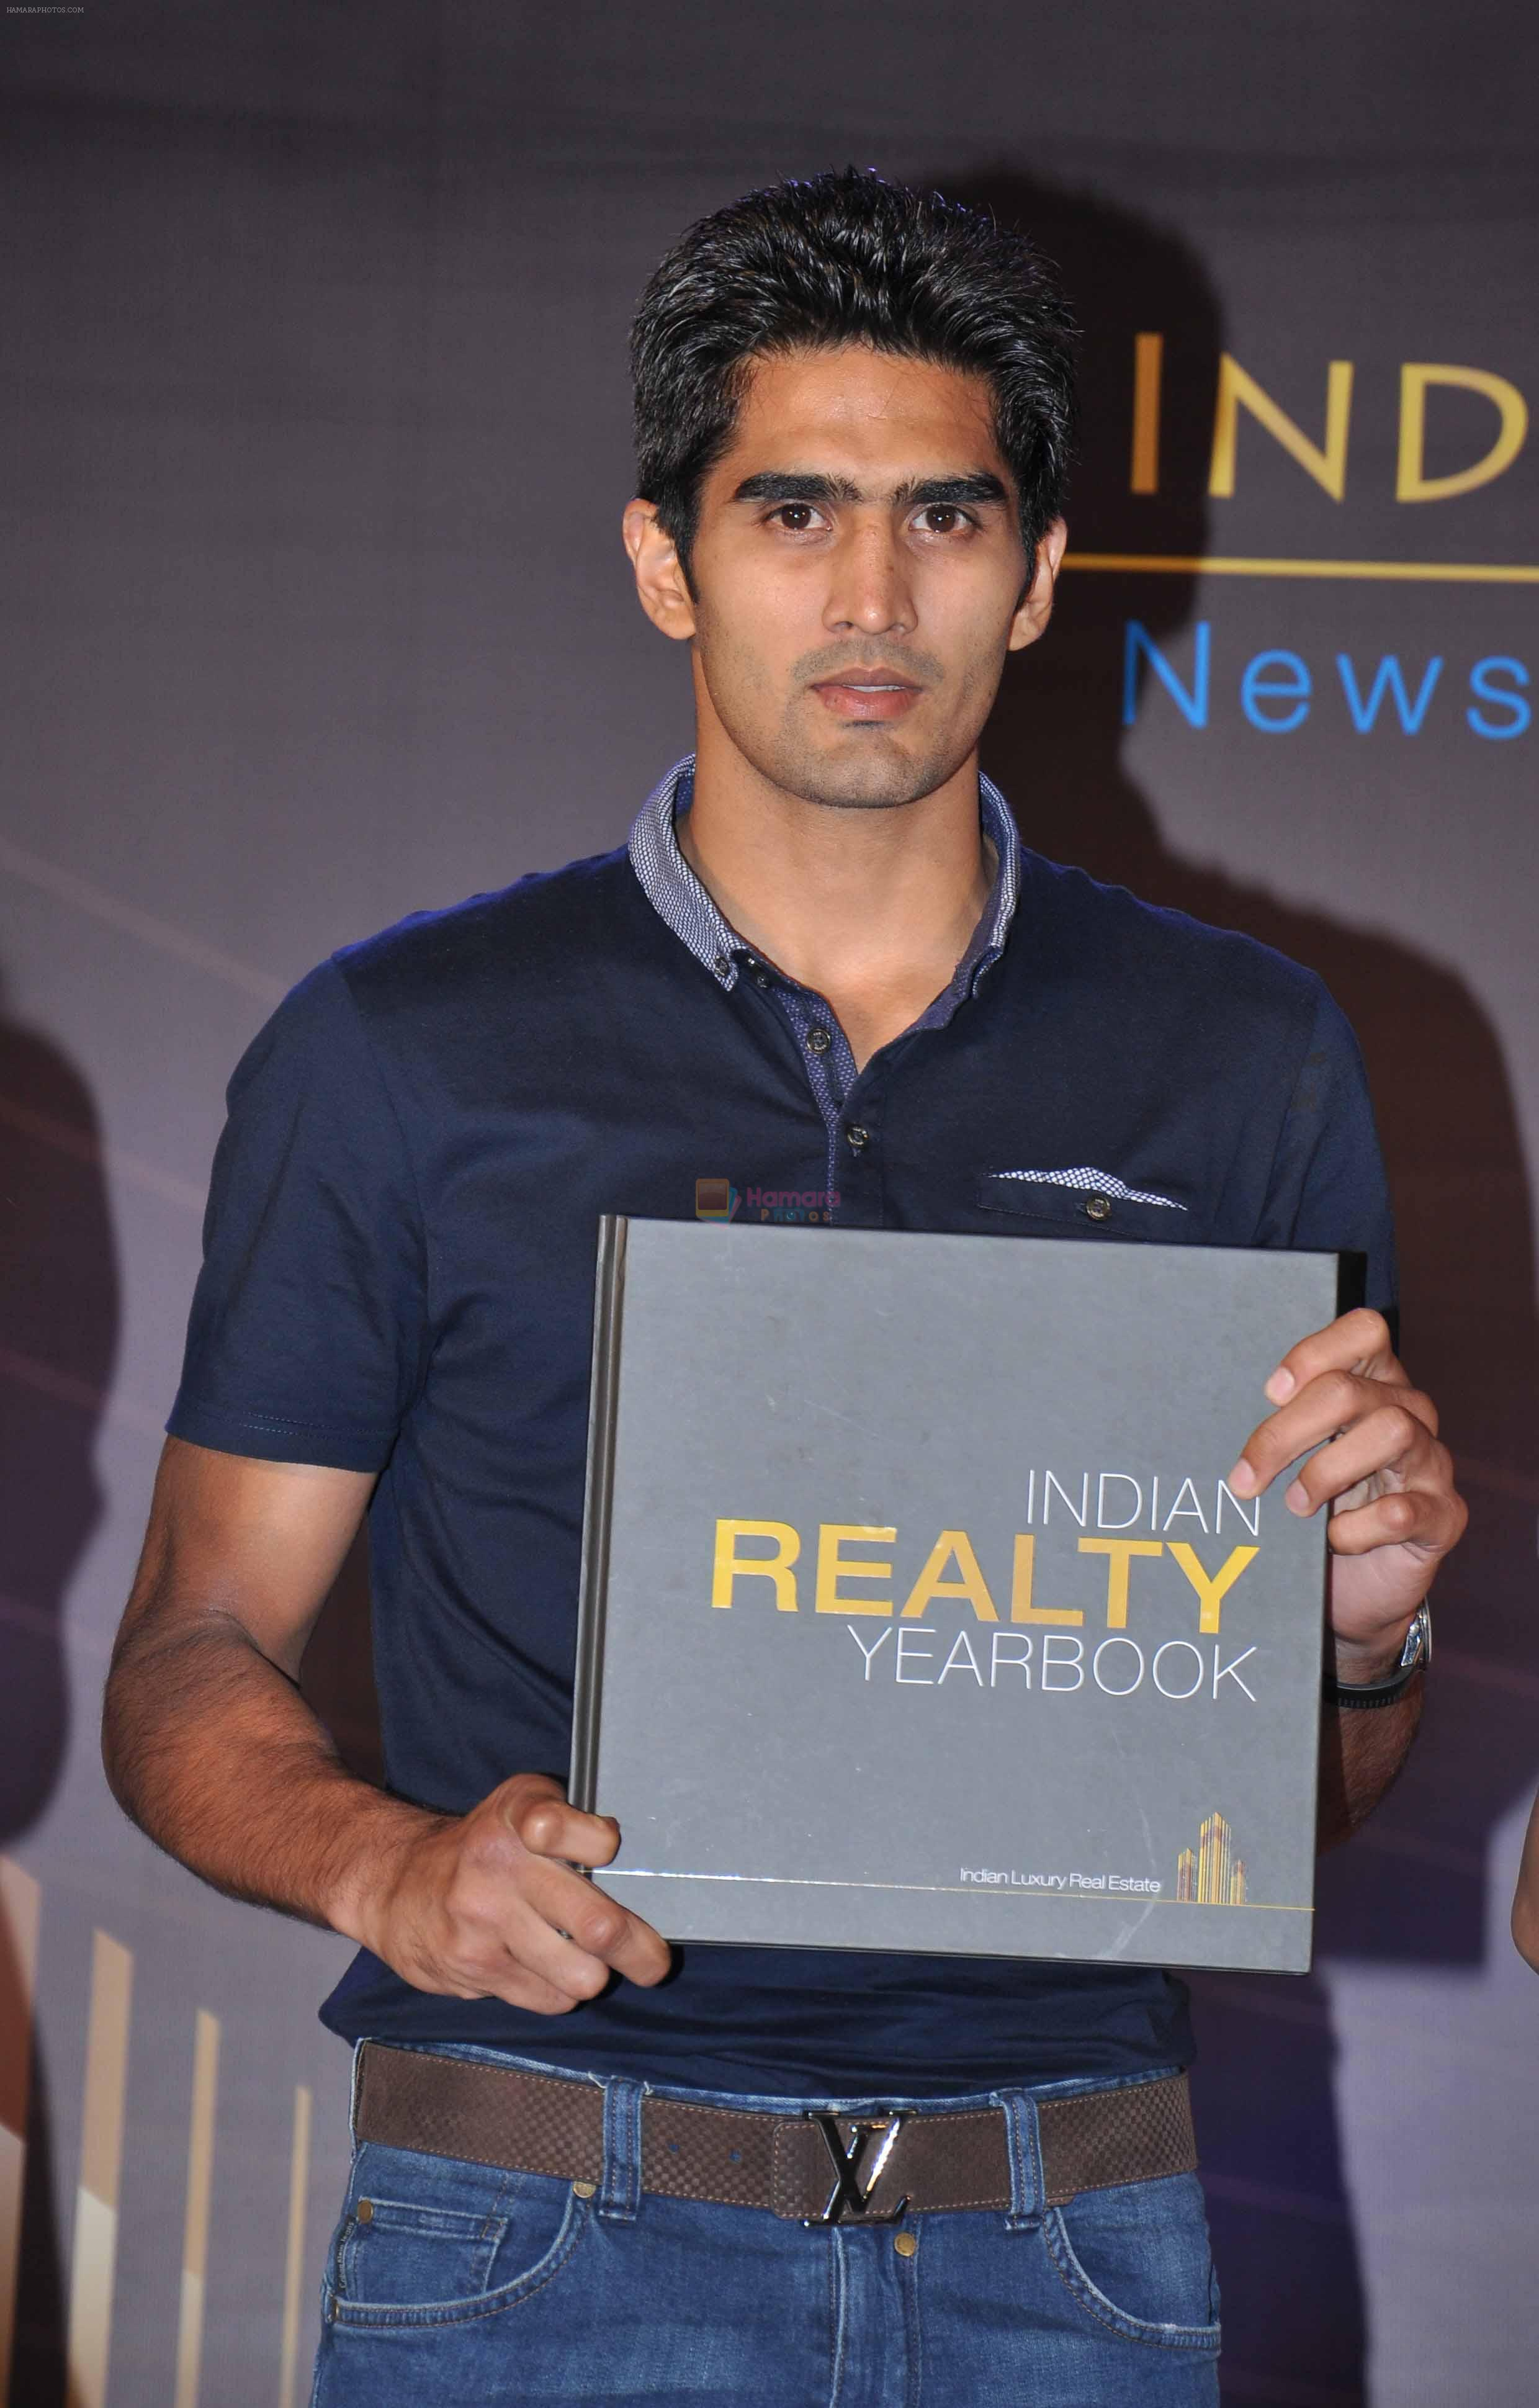 Vijender Singh launch India Realty Yearbook & Real Leaders at The premier Indian Realty Awards 2013 in New Delhi on 8th Oct 2013